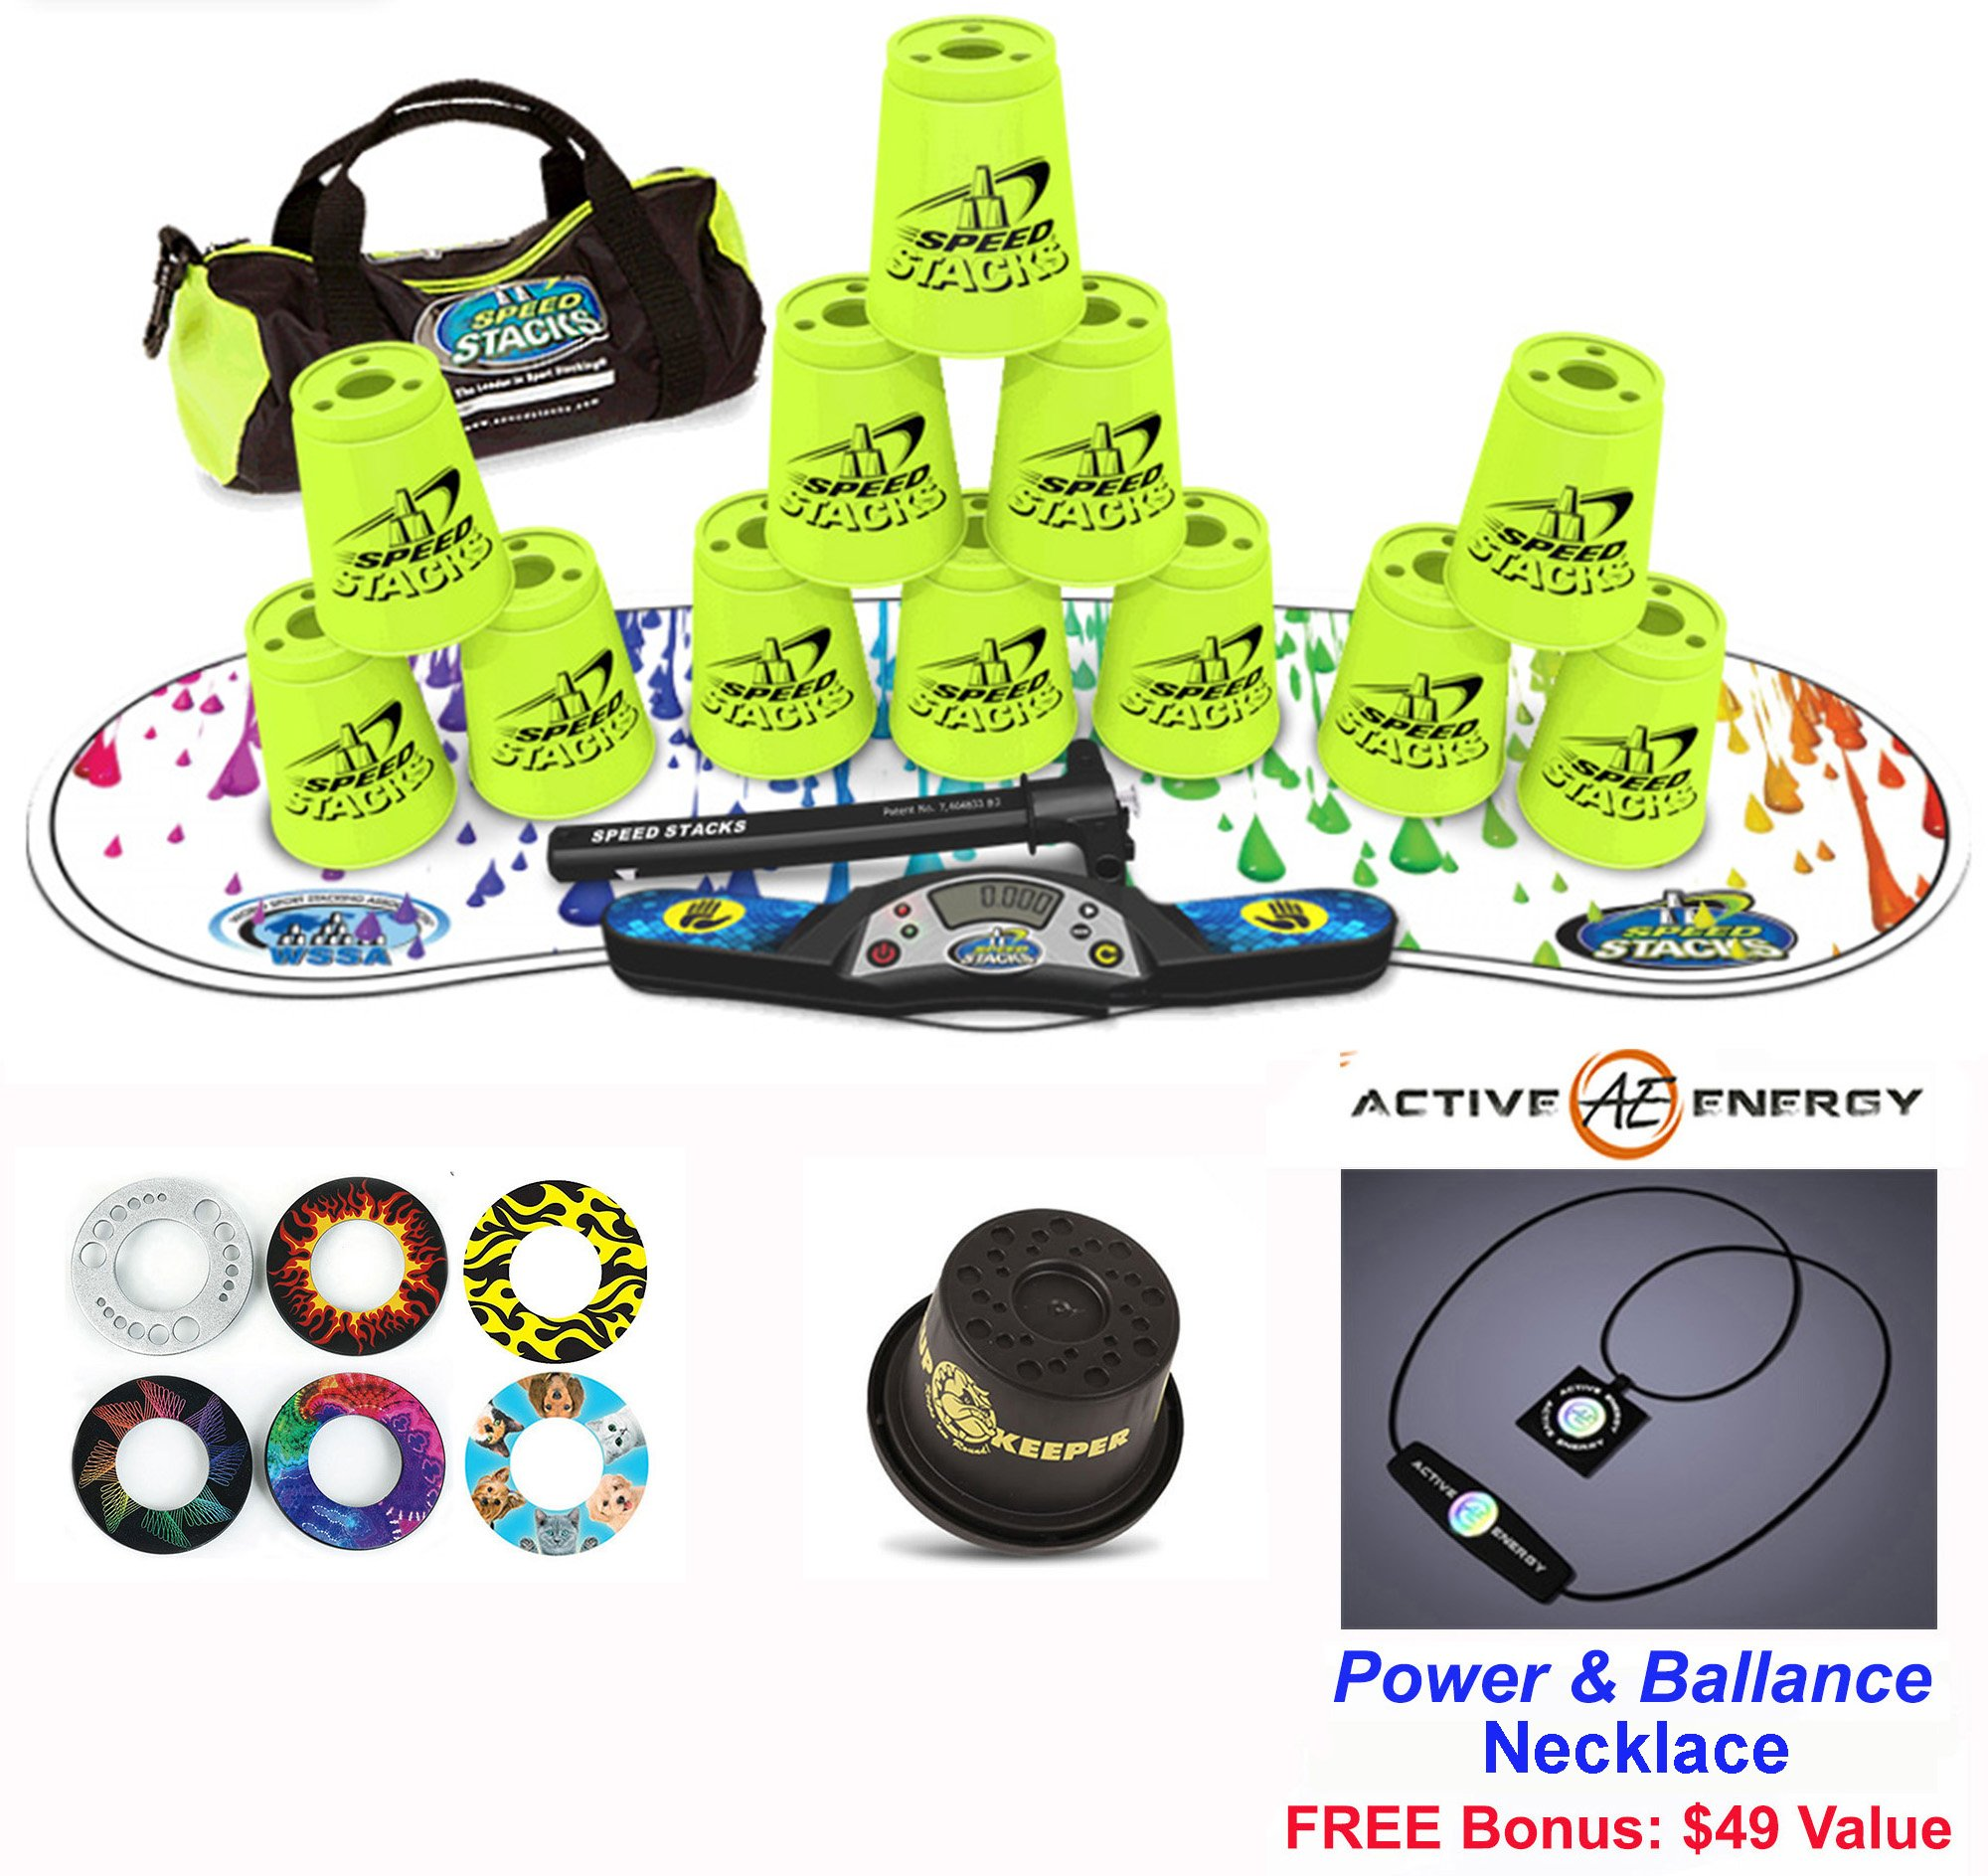 Speed Stacks Combo Set ''The Works'': 12 NEON YELLOW 4'' Cups, RAINBOW DROP Gen 3 Mat, G4 Pro Timer, Cup Keeper, Stem, Gear Bag + Active Energy Necklace by Speed Stacks